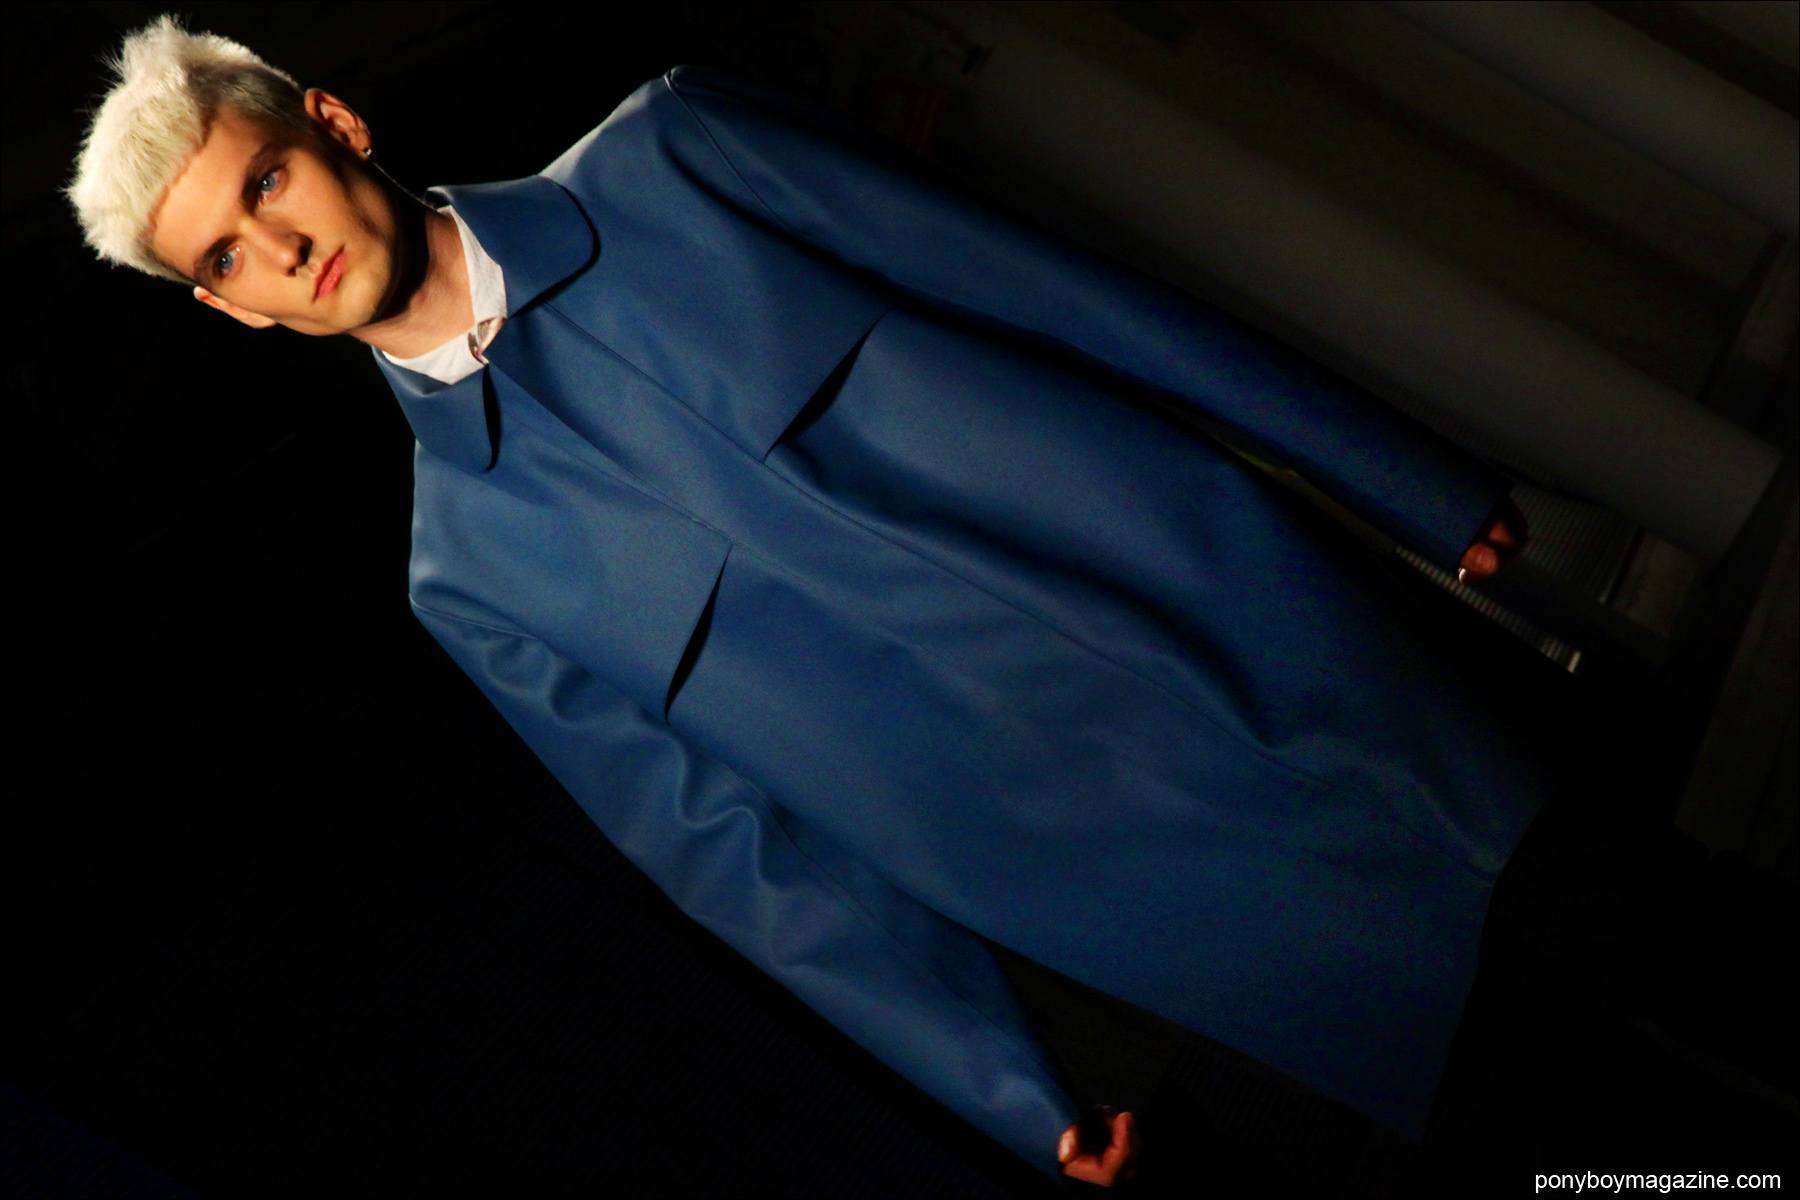 Male model James Magnum III walks in a vivid blue men's trench coat for Patrik Ervell S/S15 collection at Milk Studios. Photograph by Alexander Thompson for Ponyboy Magazine.